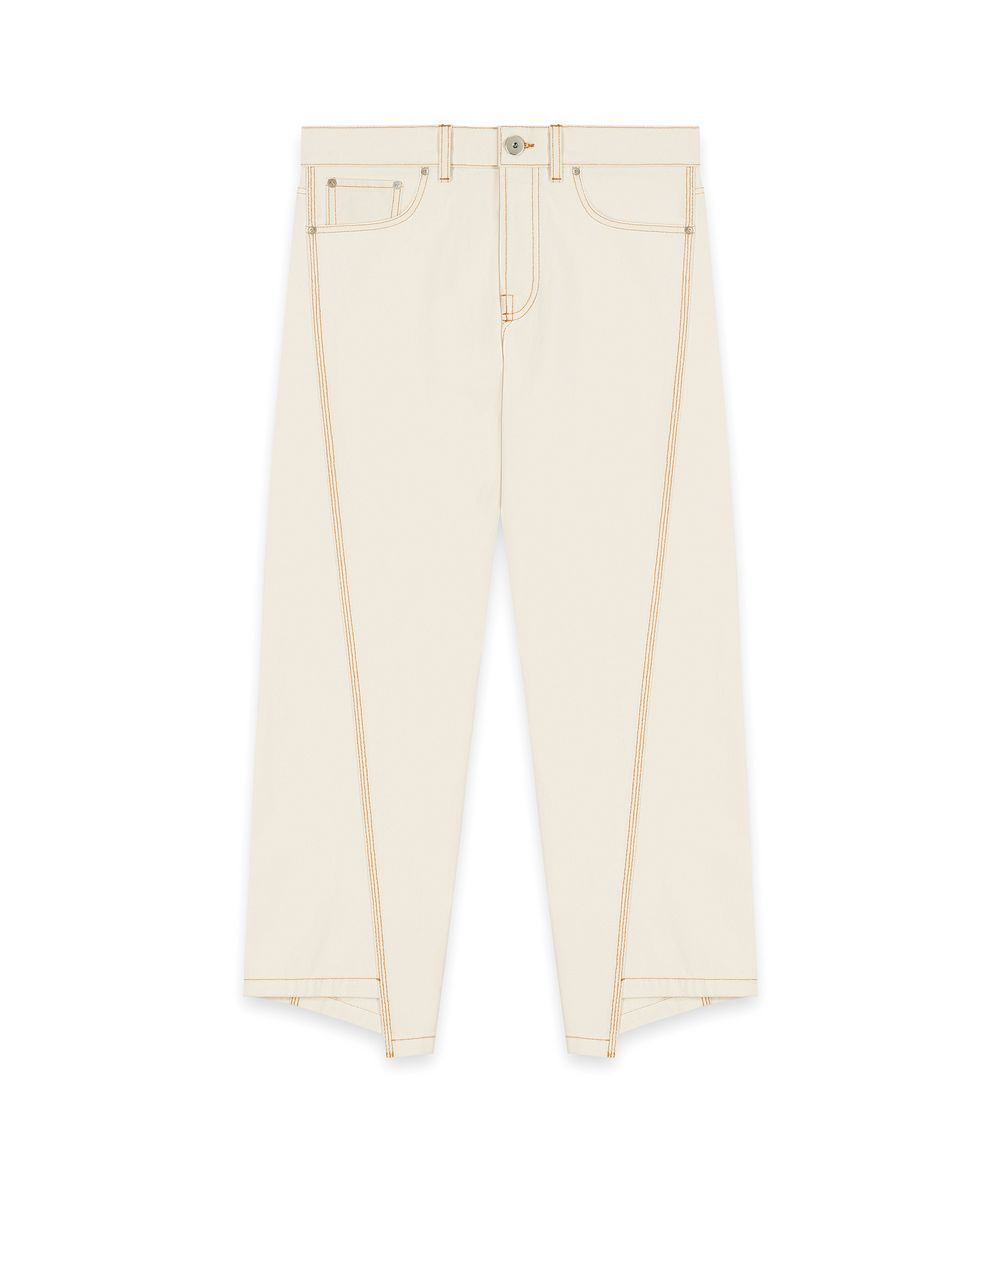 ASYMMETRICAL TROUSERS IN TOPSTITCHED DENIM - Lanvin